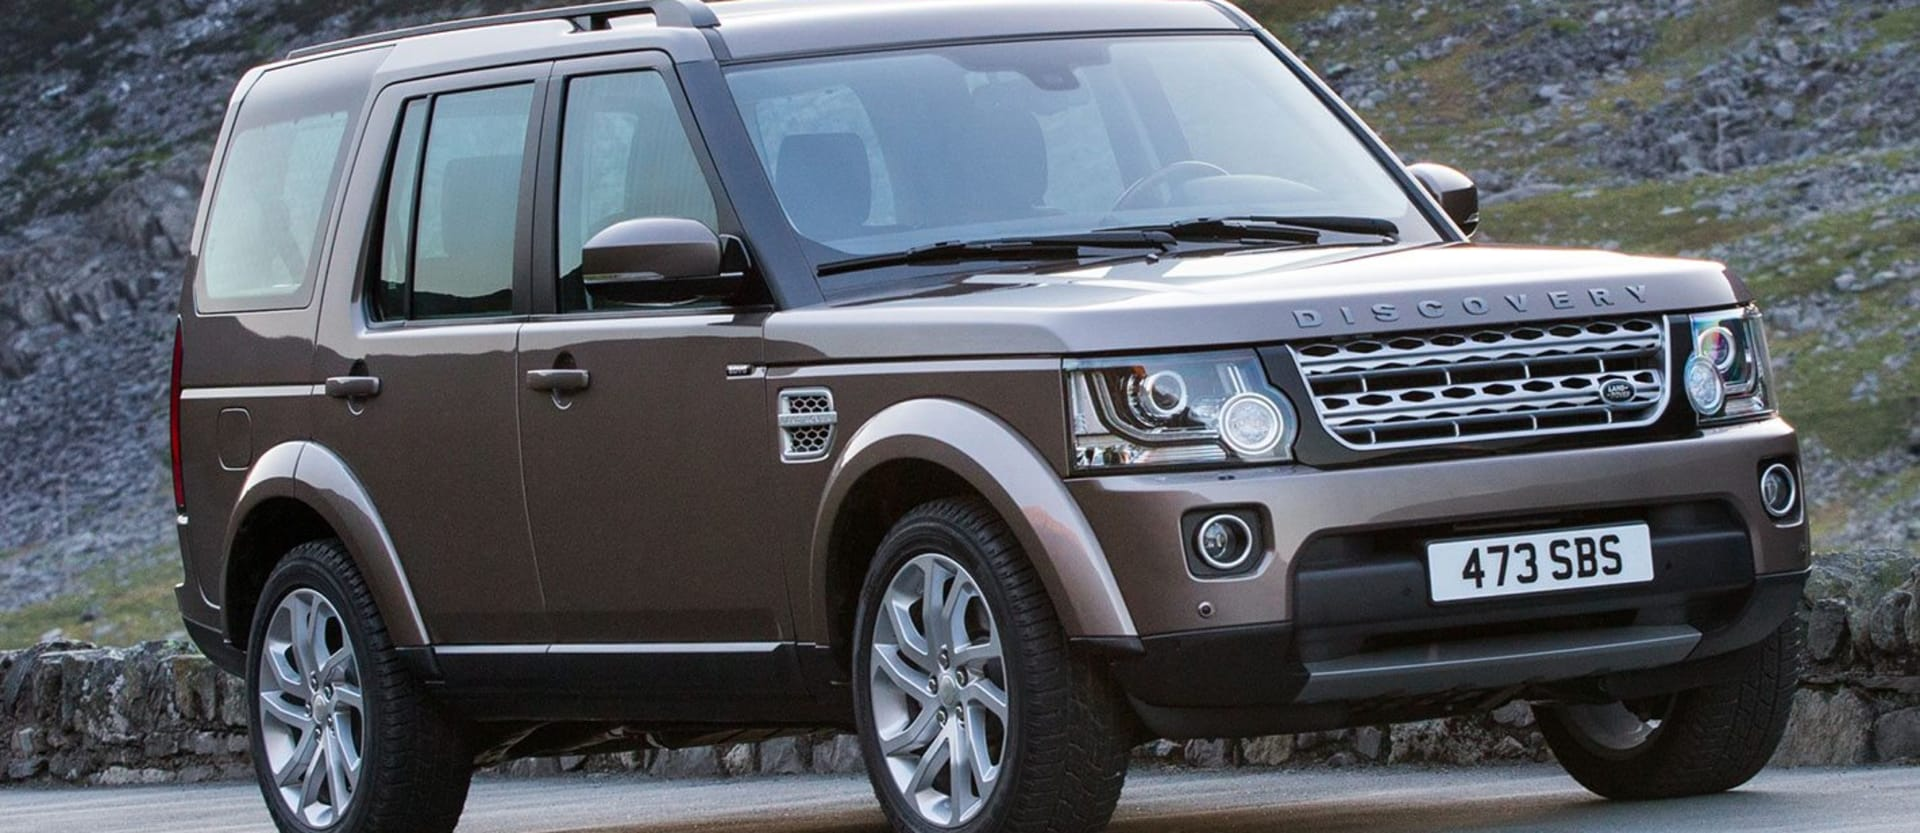 Land Rover Discovery 2015 Static Main 1 Jpg